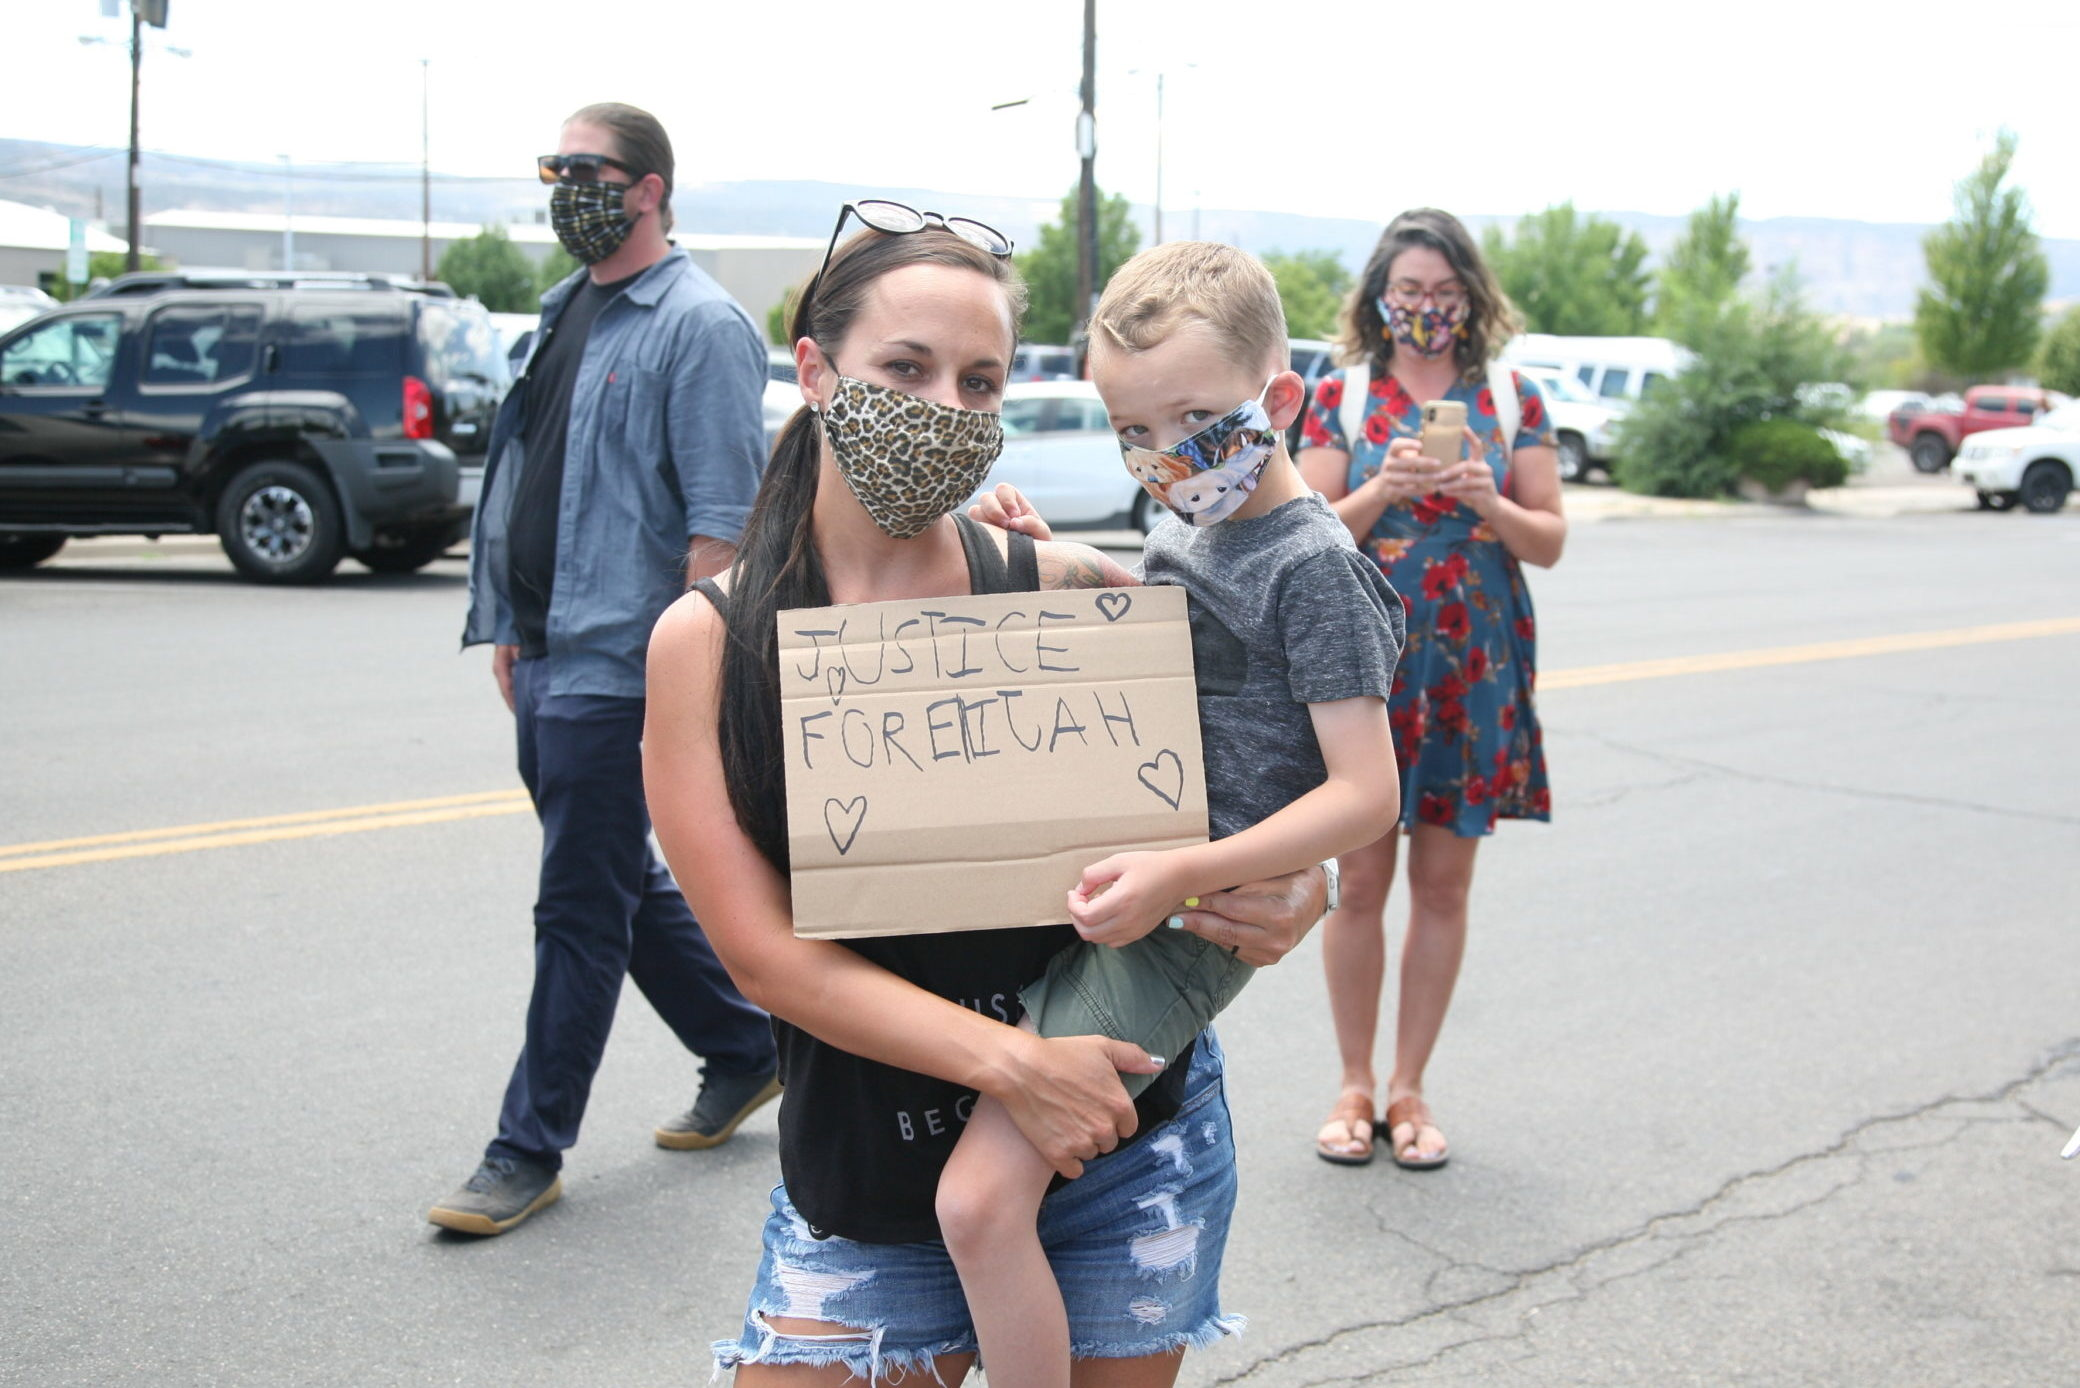 A demonstrator shows off her sign outside of Gov. Jared Polis' bill signing event in Grand Junction, July 6, 2020.